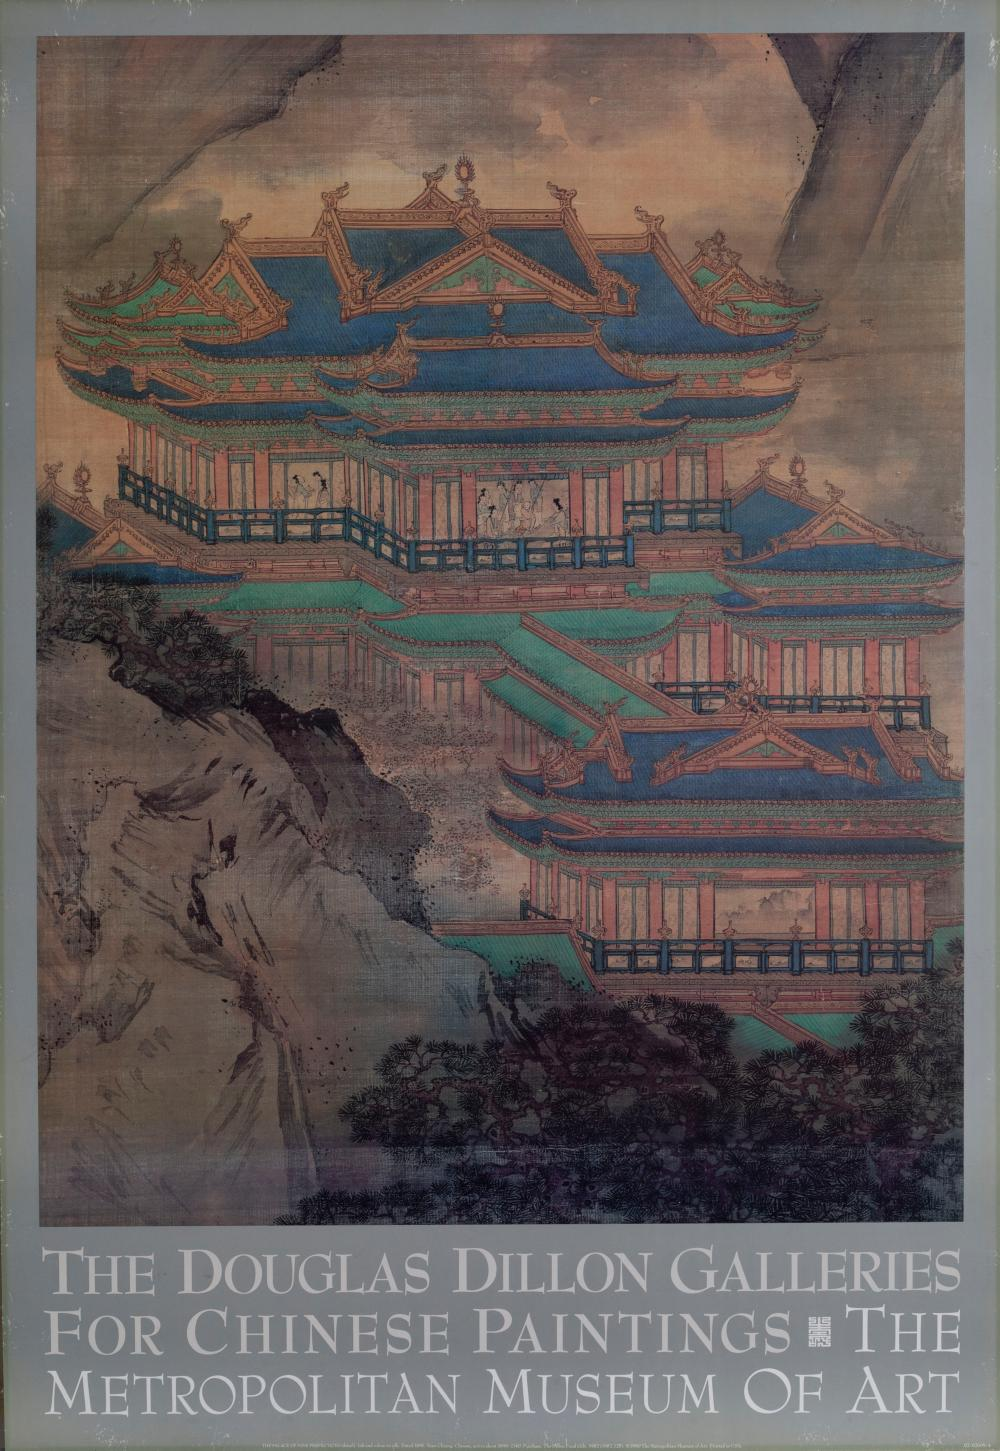 Yuan Jiang, The Palace of Nine Perfections, Poster on board